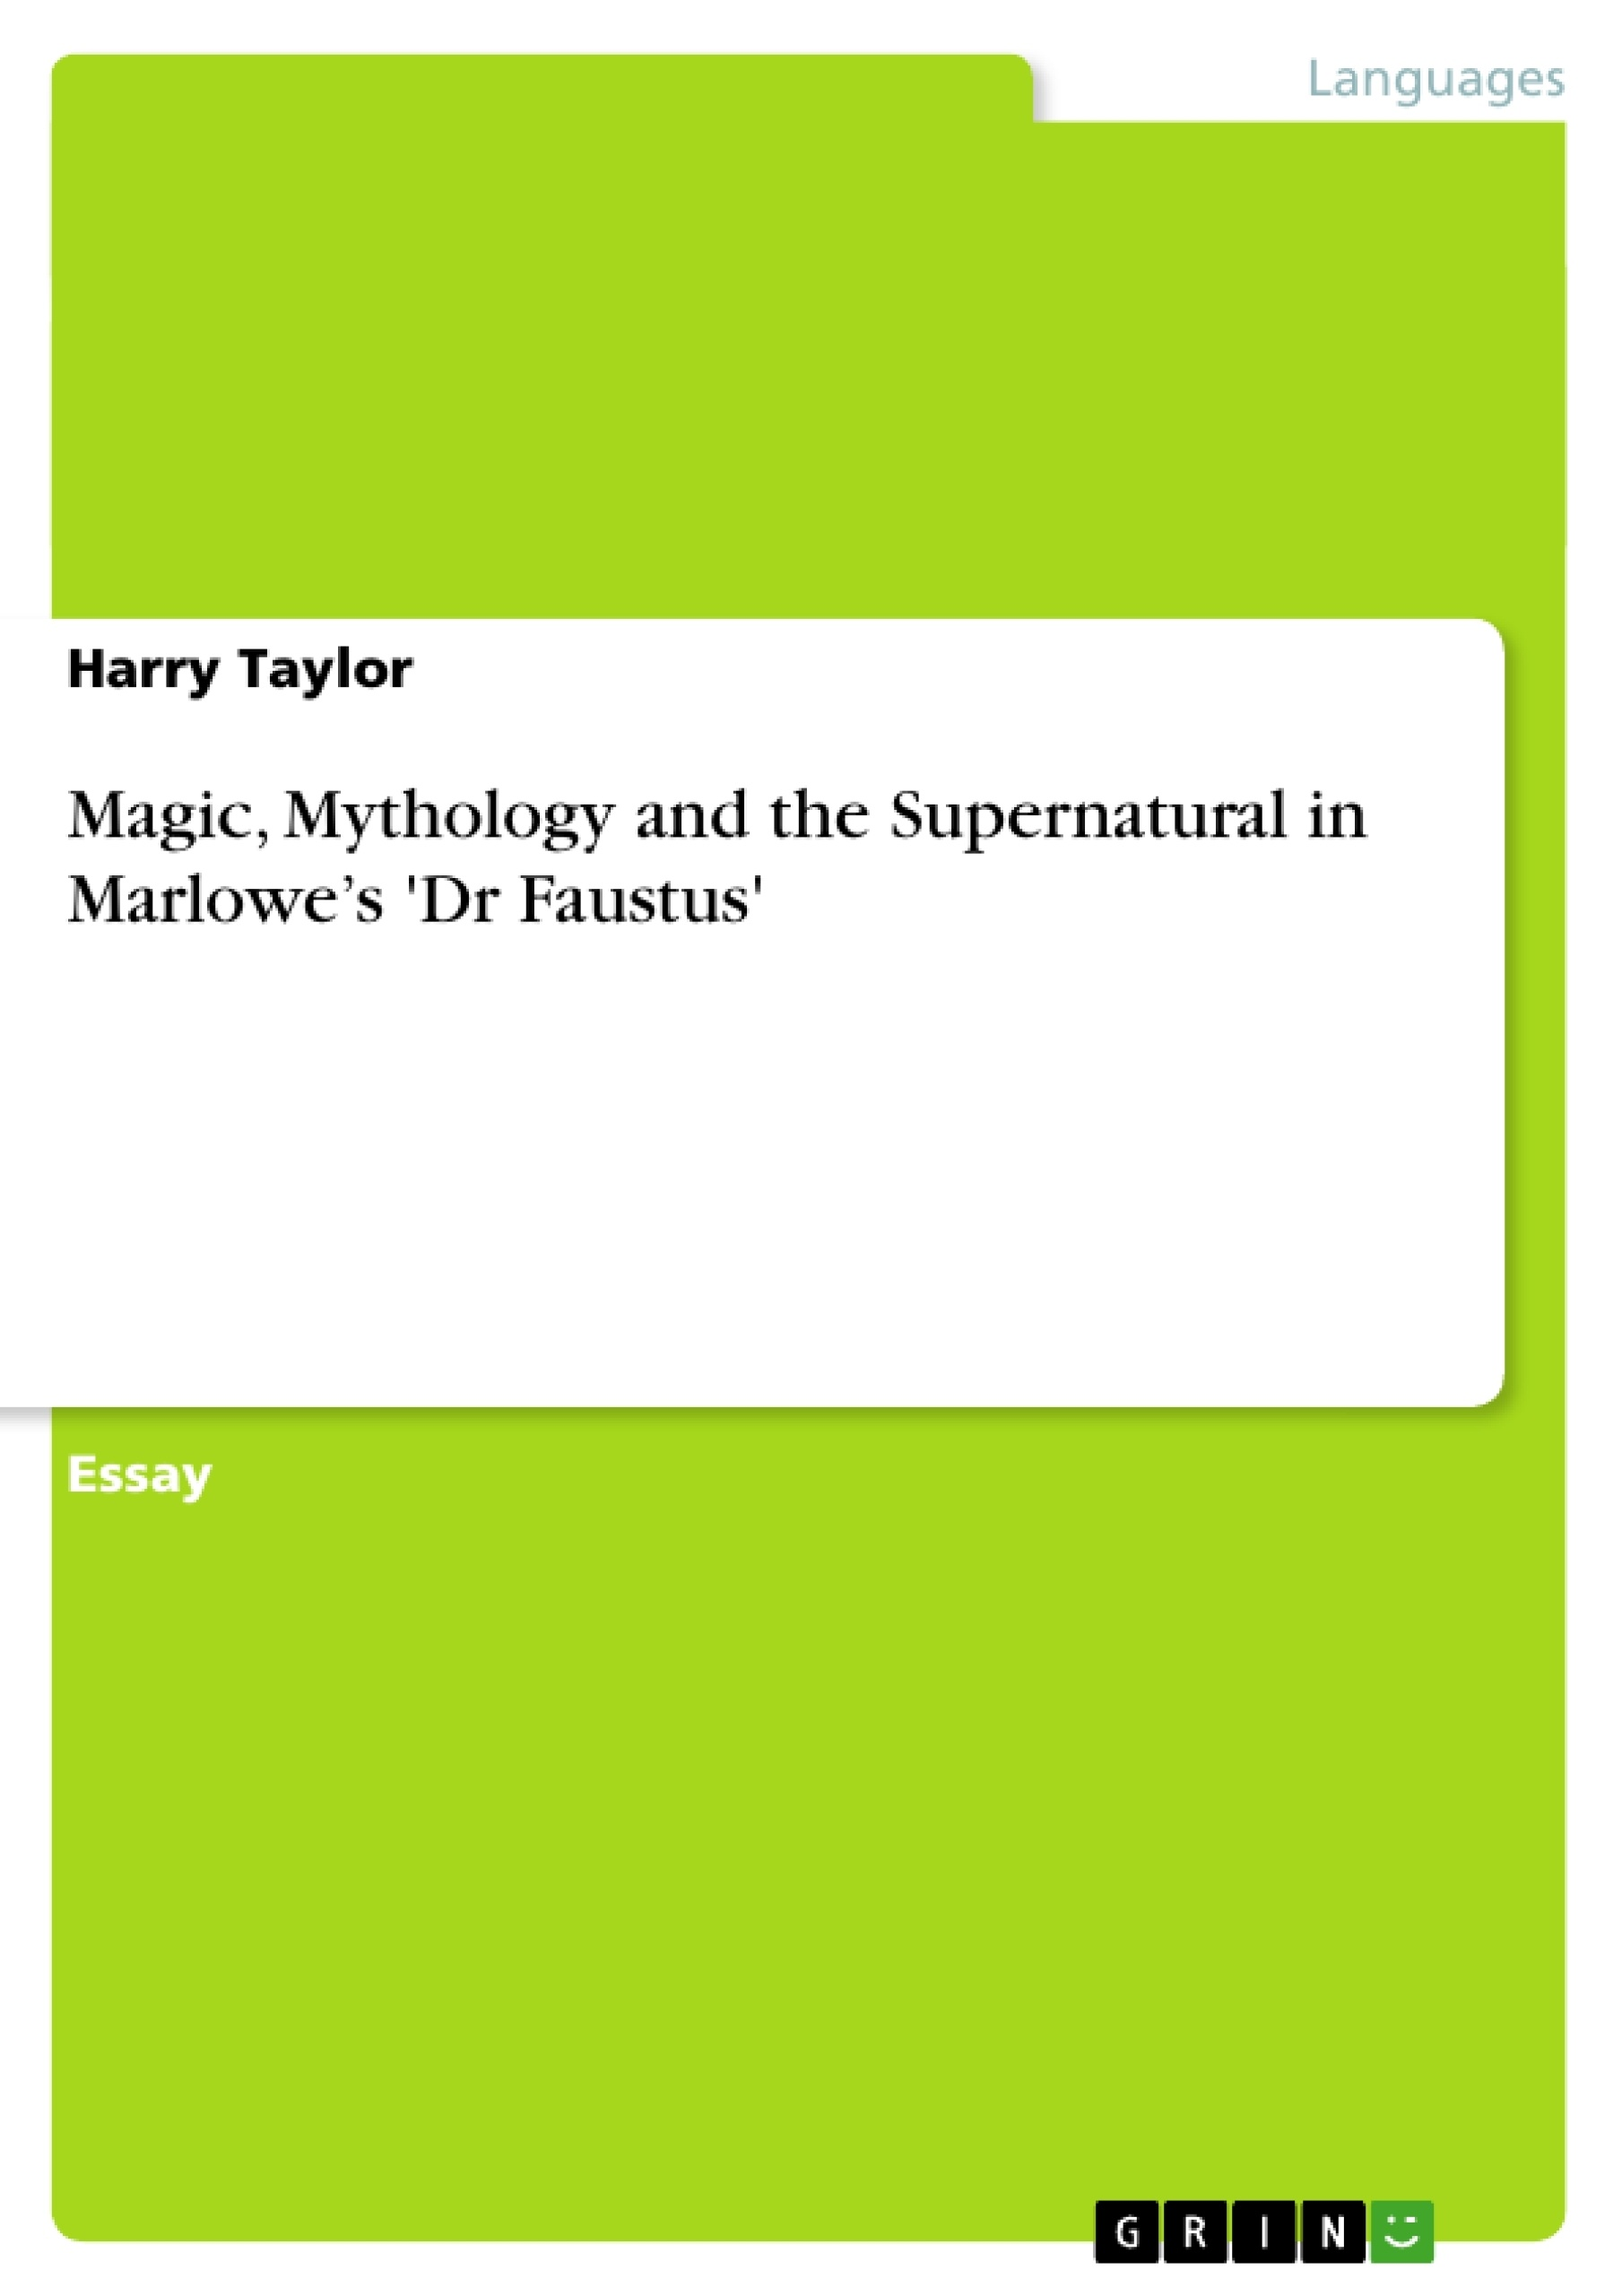 Title: Magic, Mythology and the Supernatural in Marlowe's 'Dr Faustus'